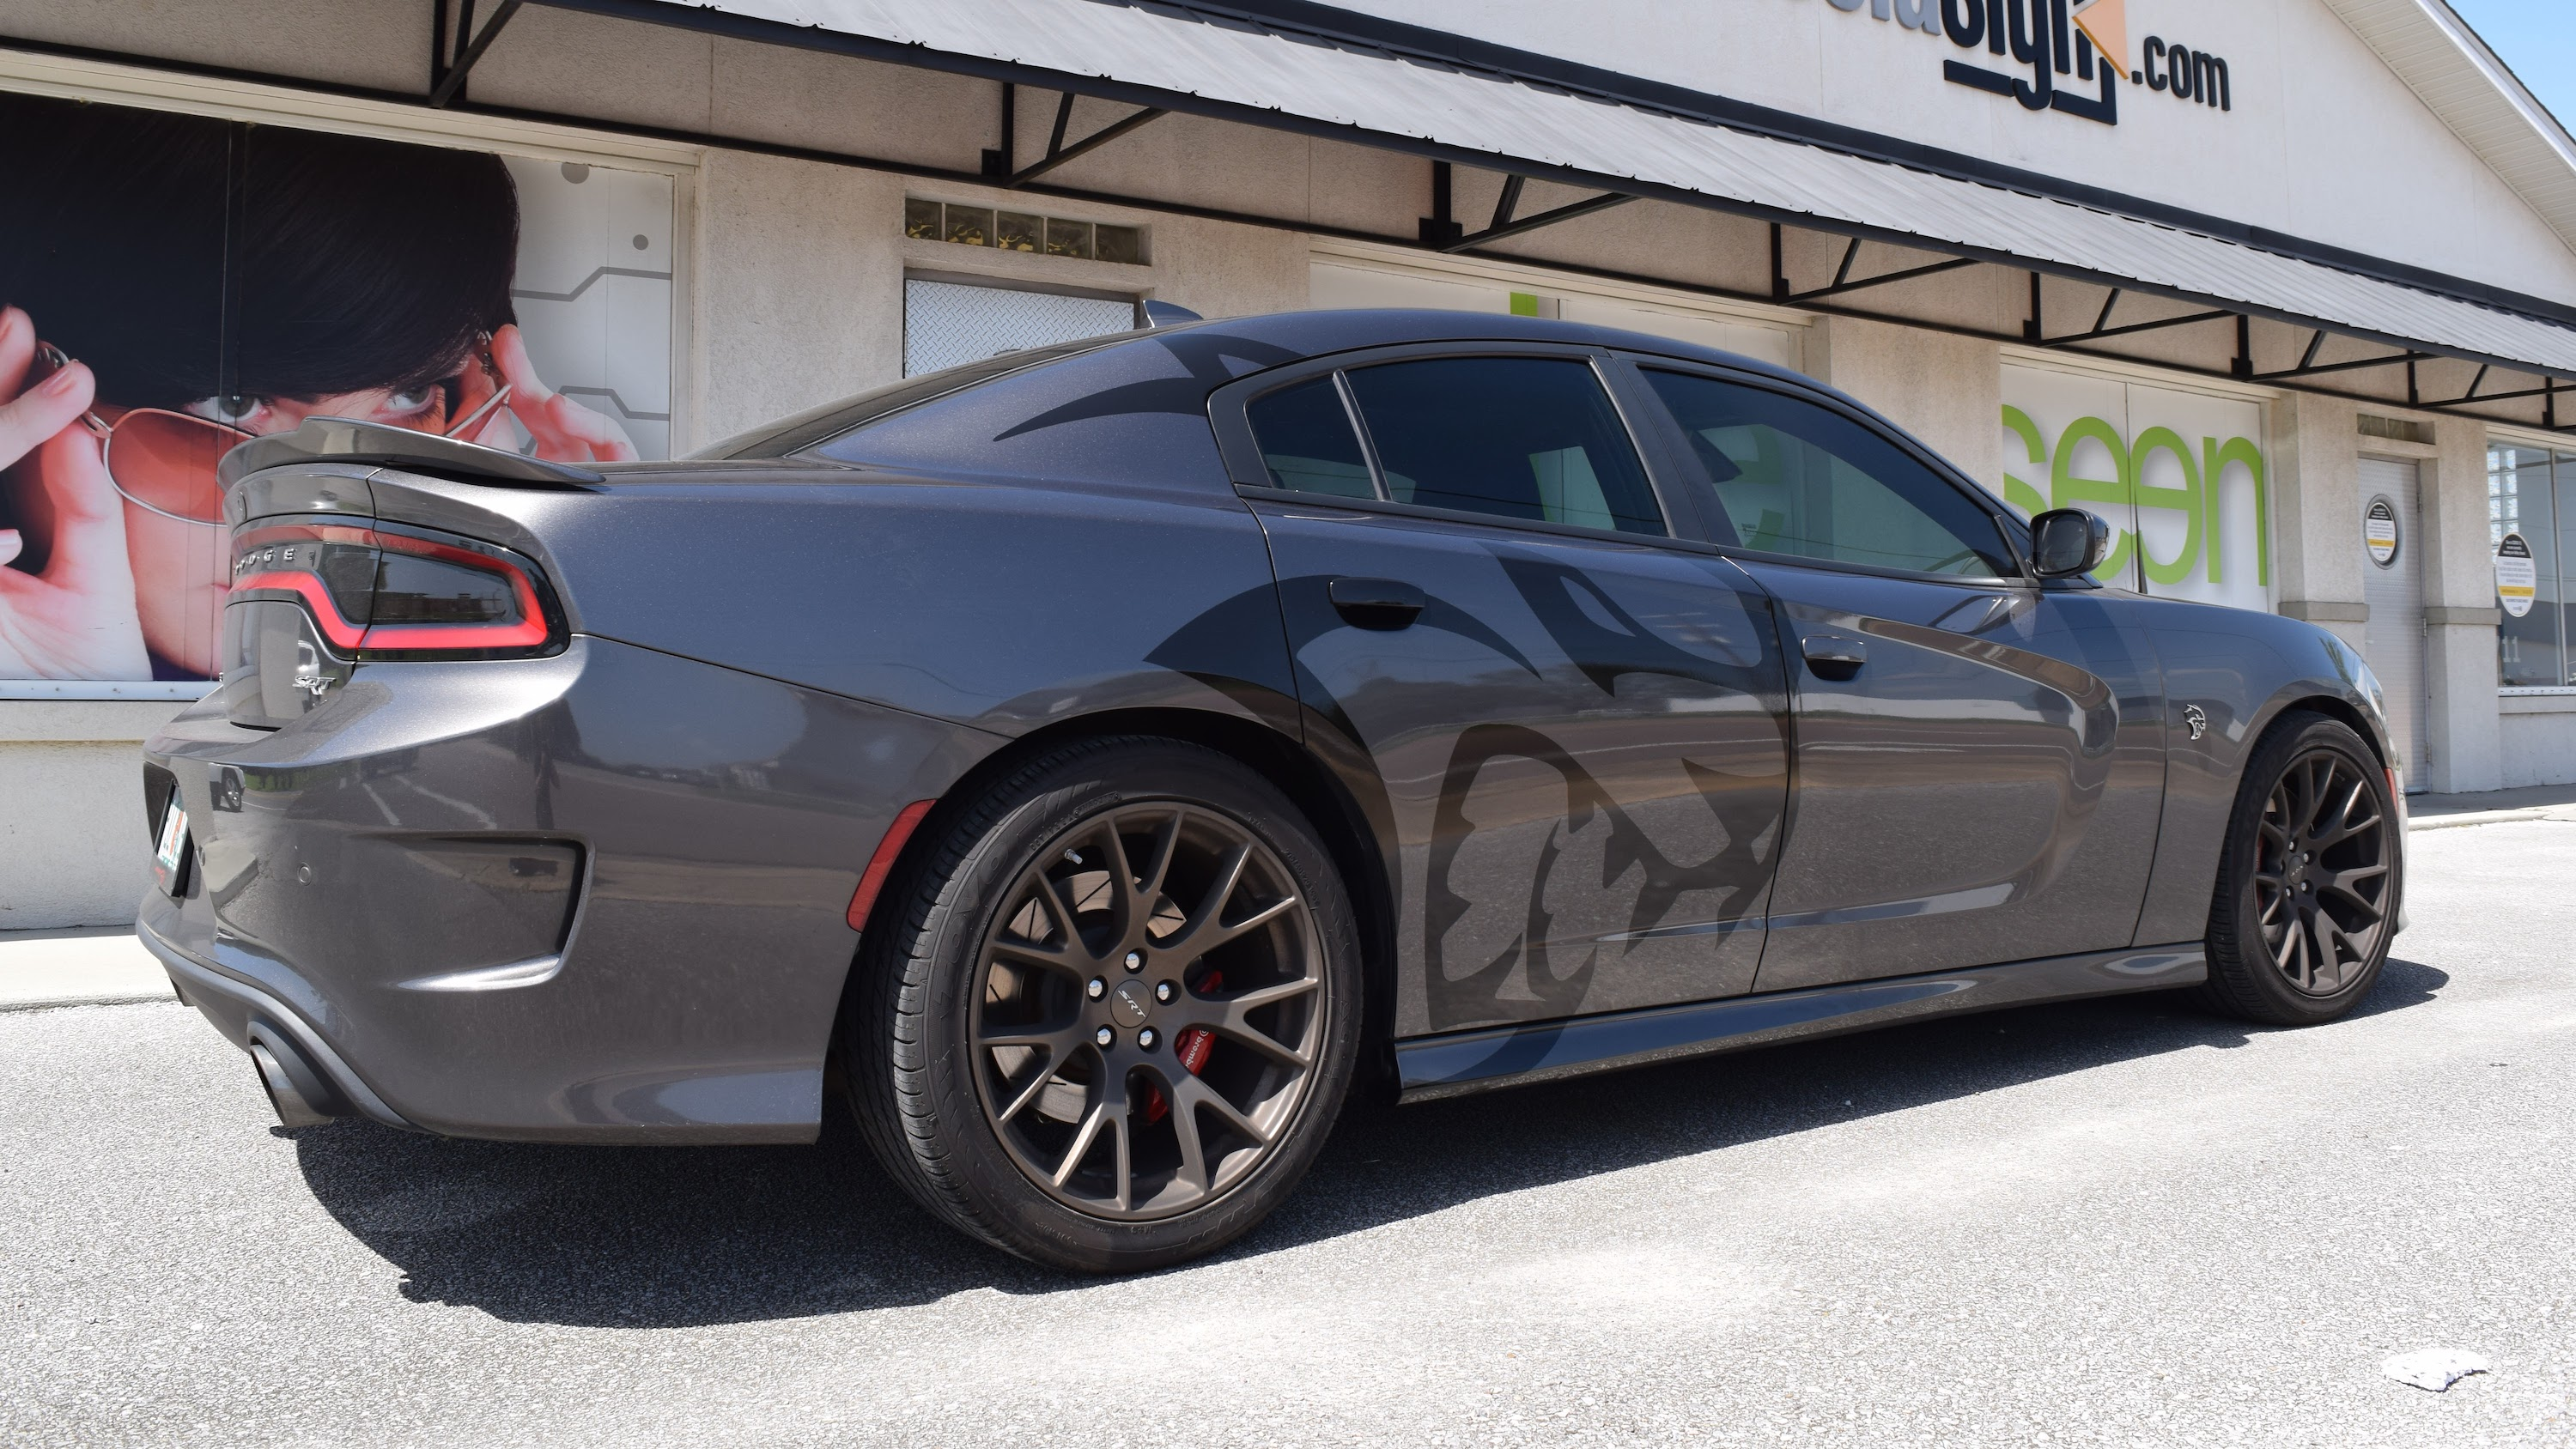 Hellcat vehicle graphics on Dodge Charger